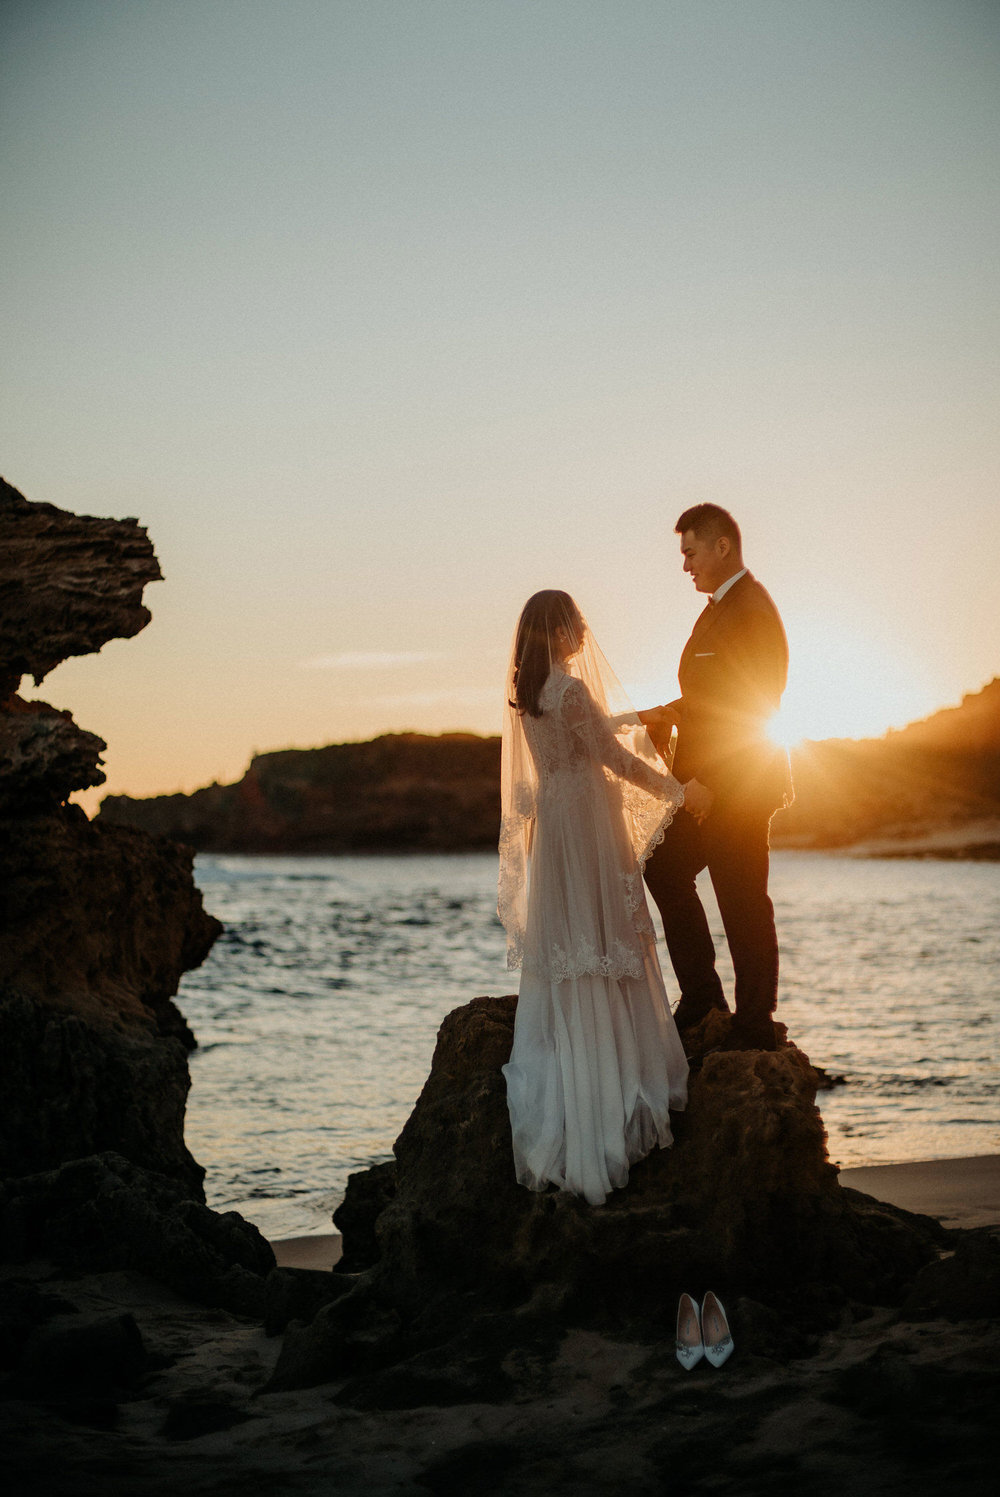 049-melbourne-wedding-bride-and-groom-andrew-hardy-sunset-sorrento.jpg